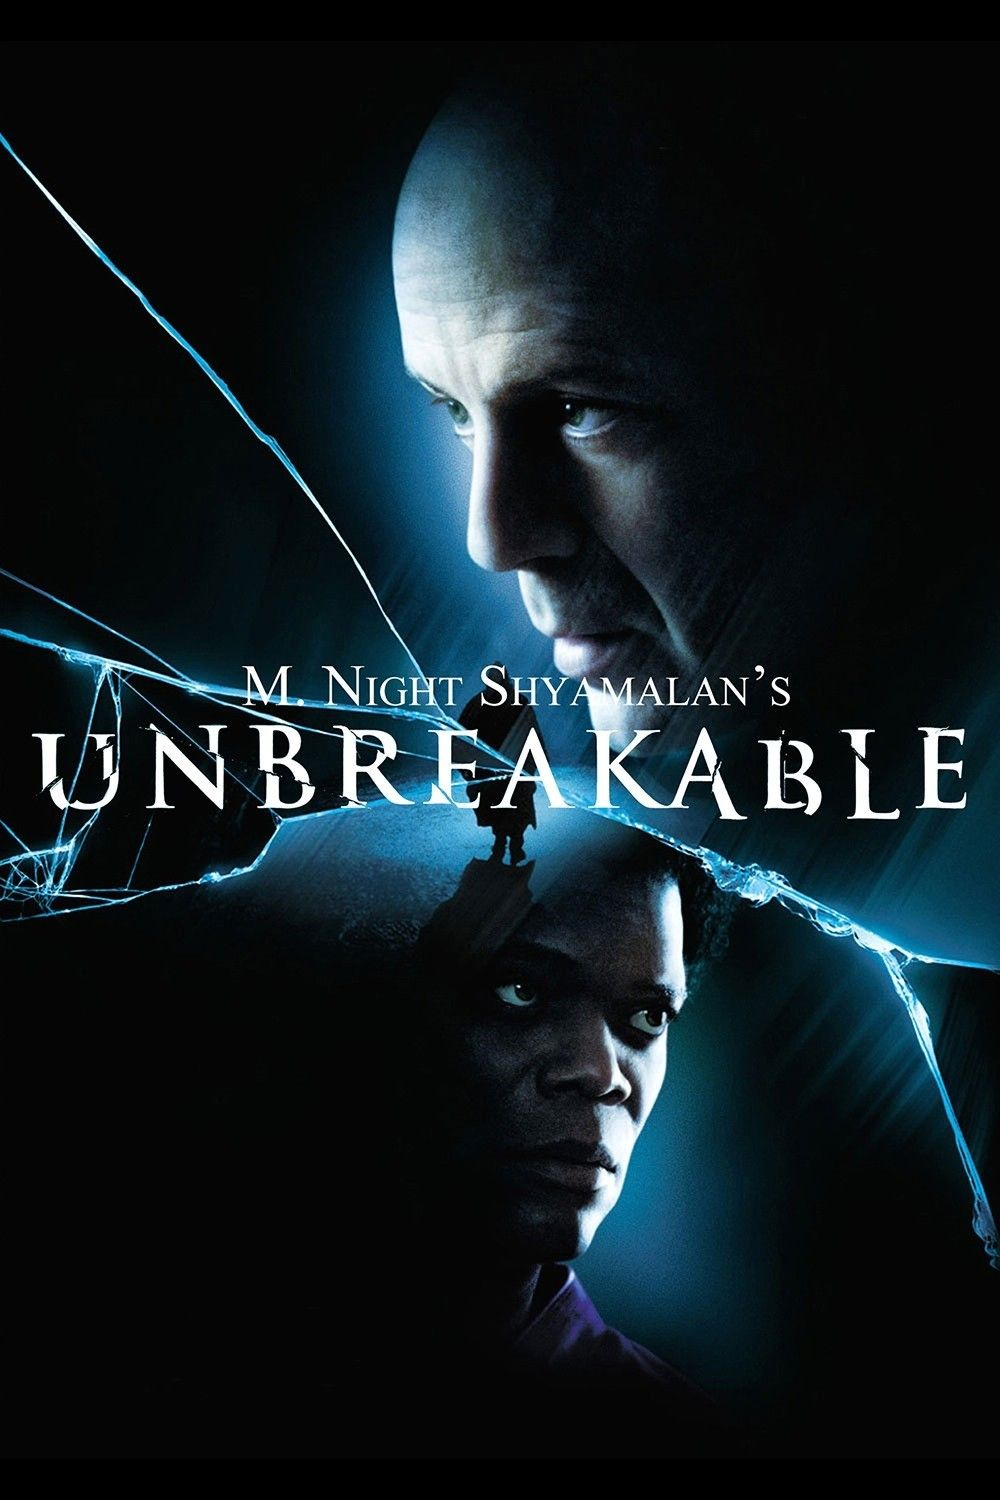 Unbreakable 2000 Streaming Movies Online Streaming Movies Free Full Movies Online Free